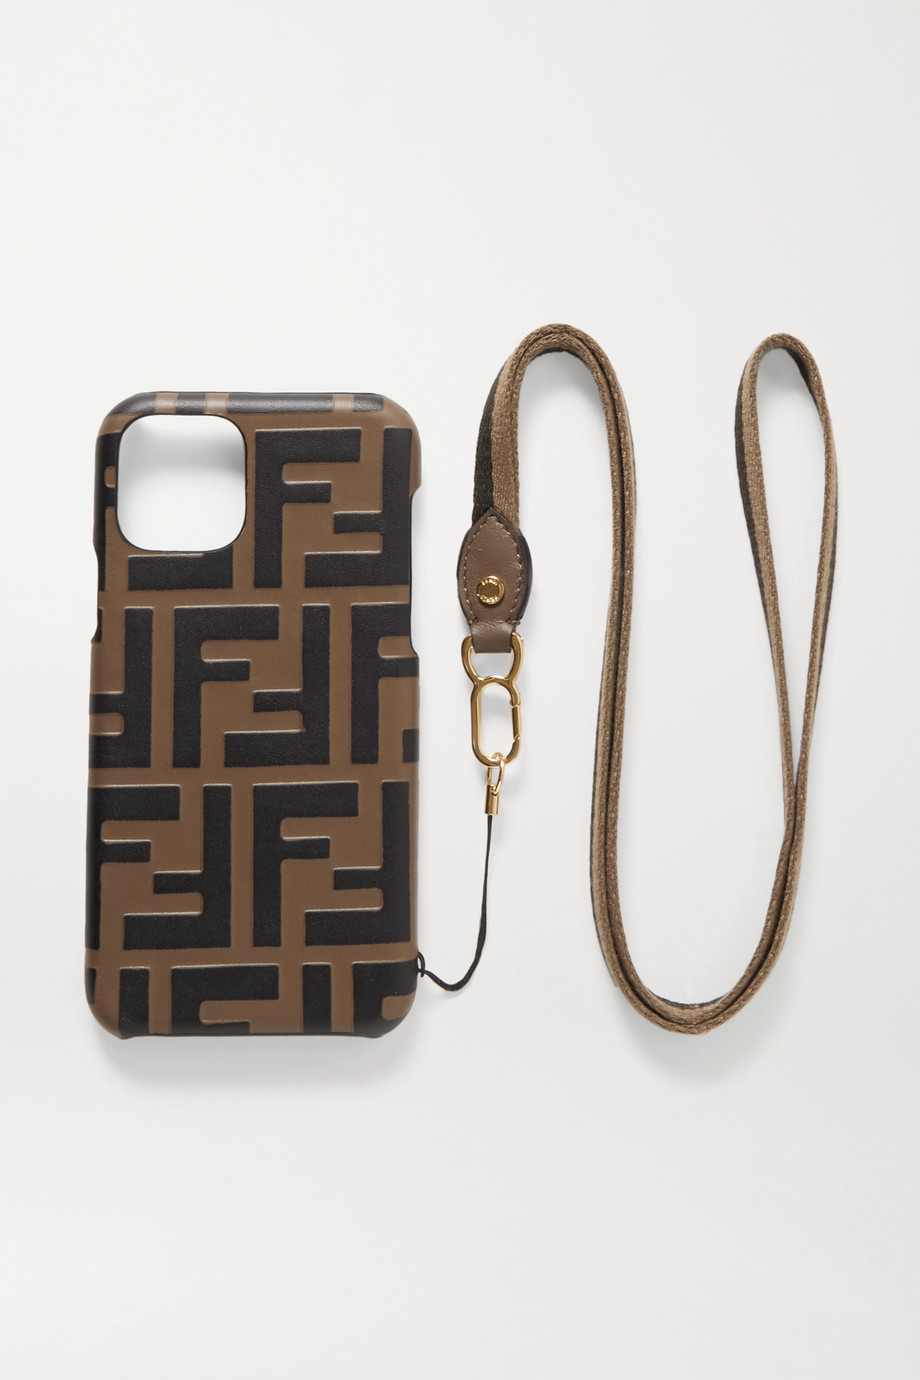 Fendi Canvas-trimmed embossed leather iPhone 11 Pro case